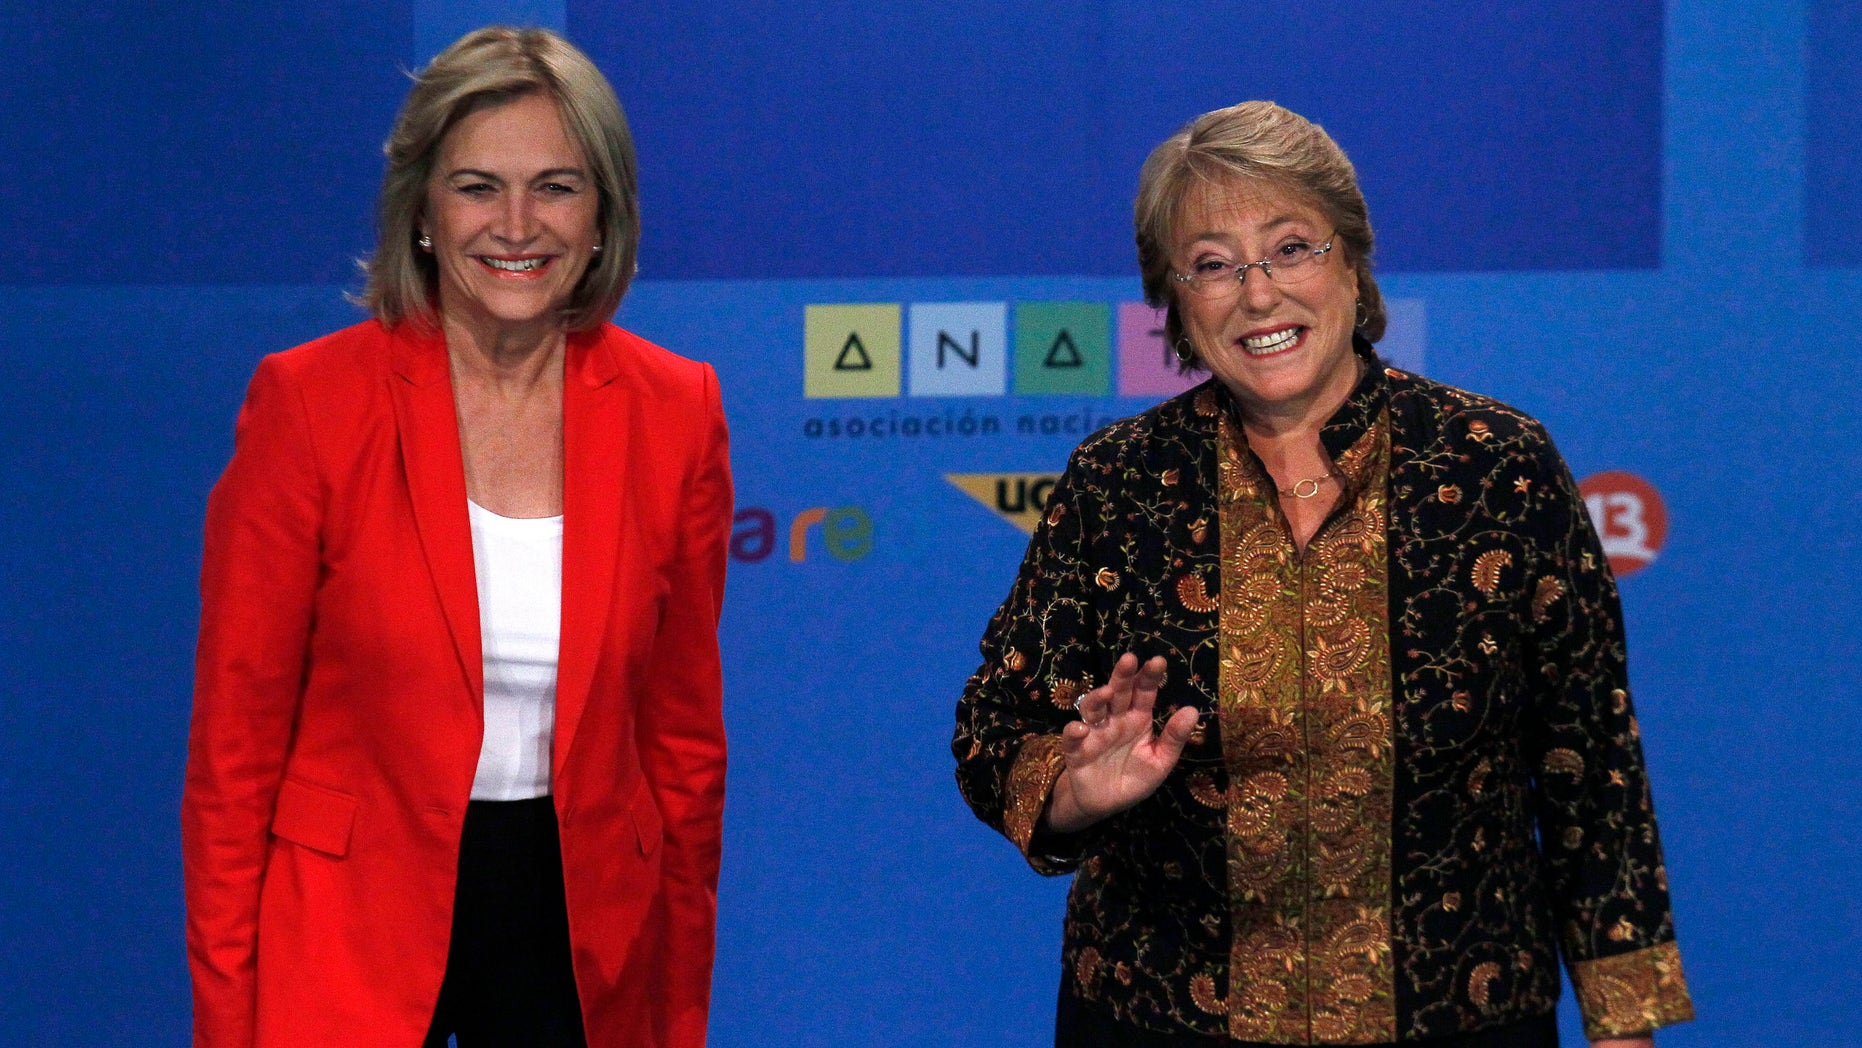 In this Tuesday, Dec. 10, 2013 photo, Chile's presidential candidate Michelle Bachelet, right, and rival Evelyn Matthei, smile for photographers before their television debate in Santiago, Chile. Bachelet and Matthei were childhood friends, but found themselves on opposite sides of the deep political divide after Chile's bloody 1973 military coup. Bachelet, who became Chile's first women president from 2006-2010, is now expected to retake the presidency in the Dec. 15 run-off election. (AP Photo/ Luis Hidalgo)